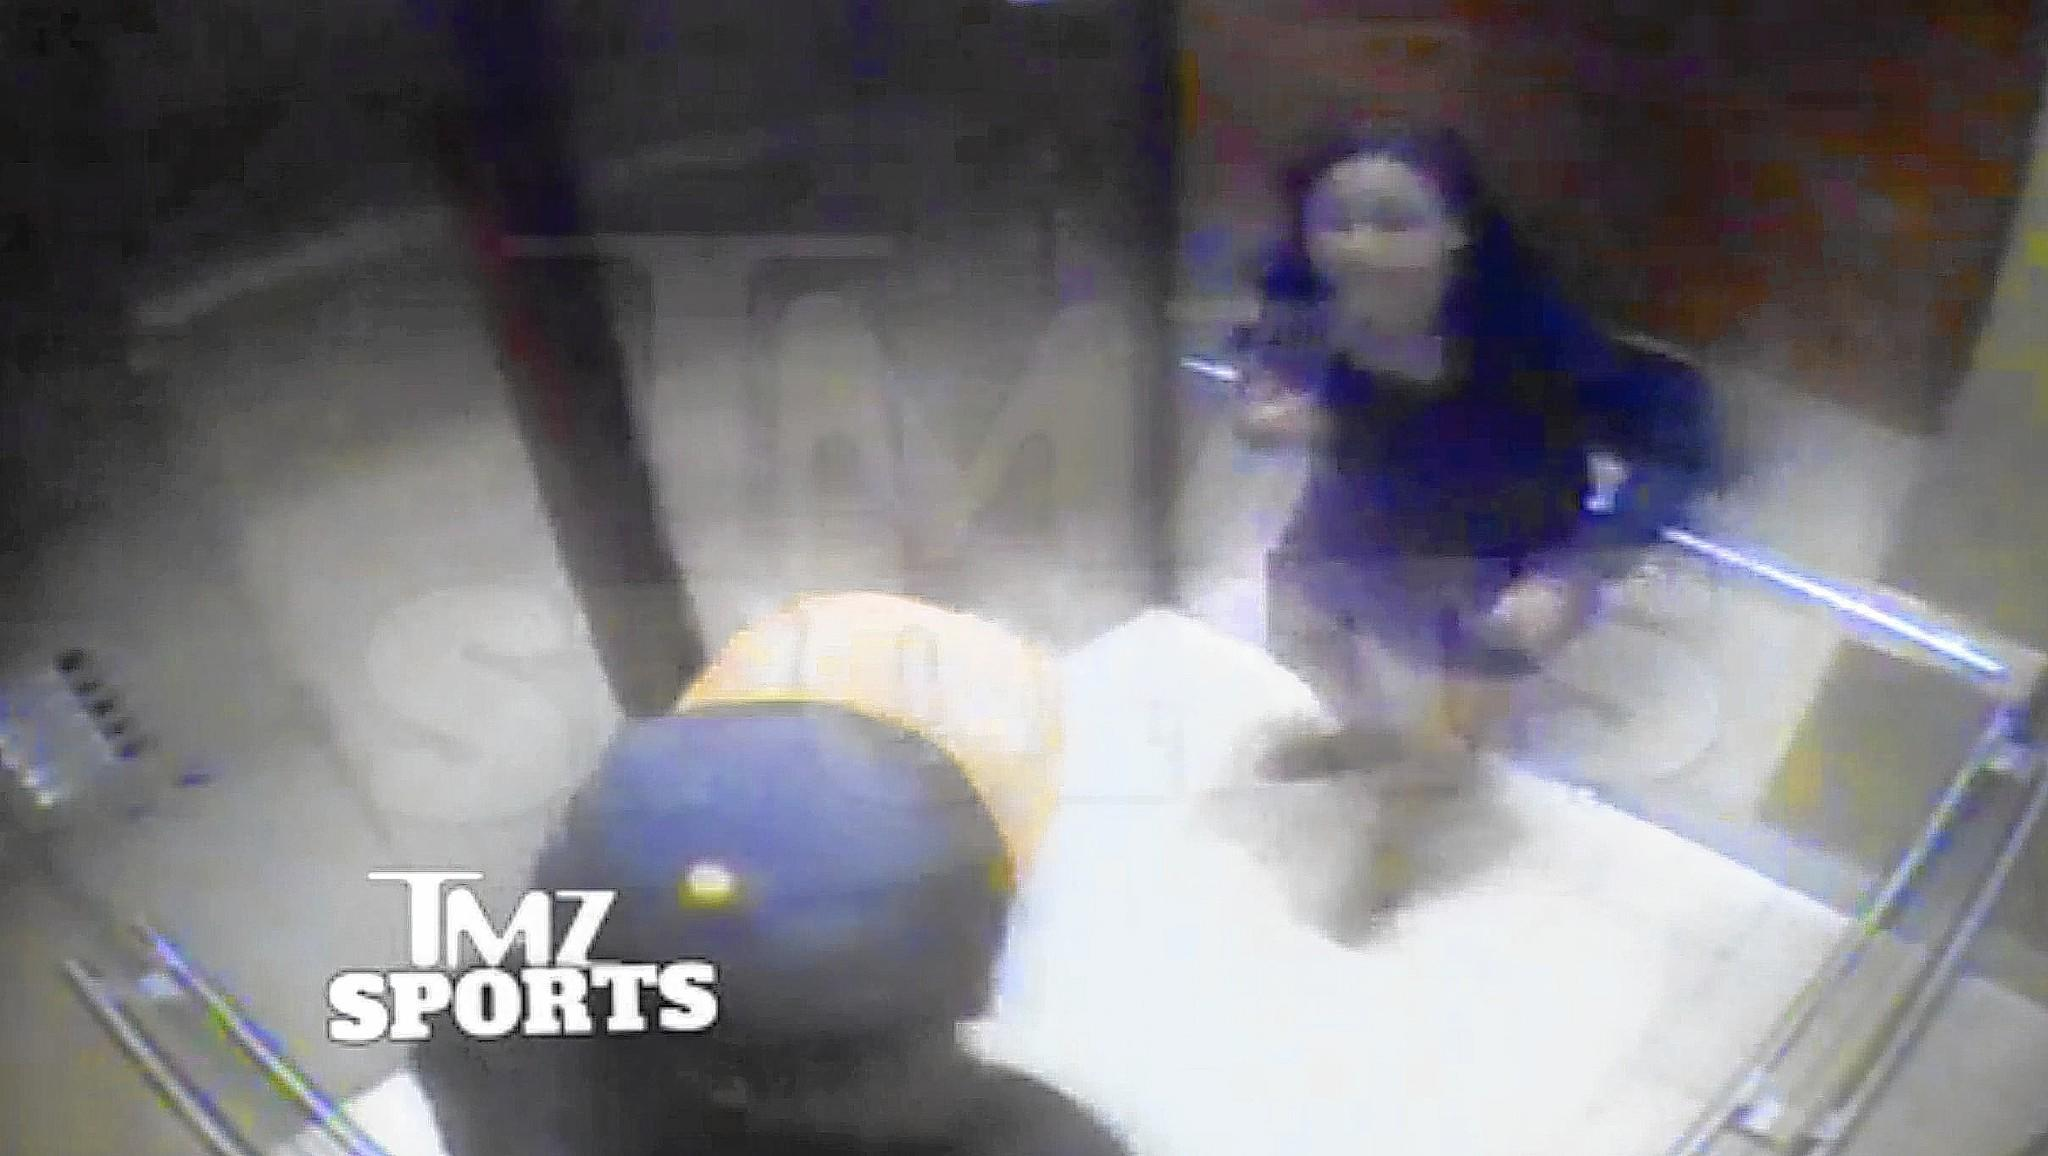 A video frame grab from a video obtained by TMZ Sports of Ray Rice in an altercation with his then fiance, Janay Palmer. They have since gotten married. The fight took place in an elevator in an Atlantic City casino.